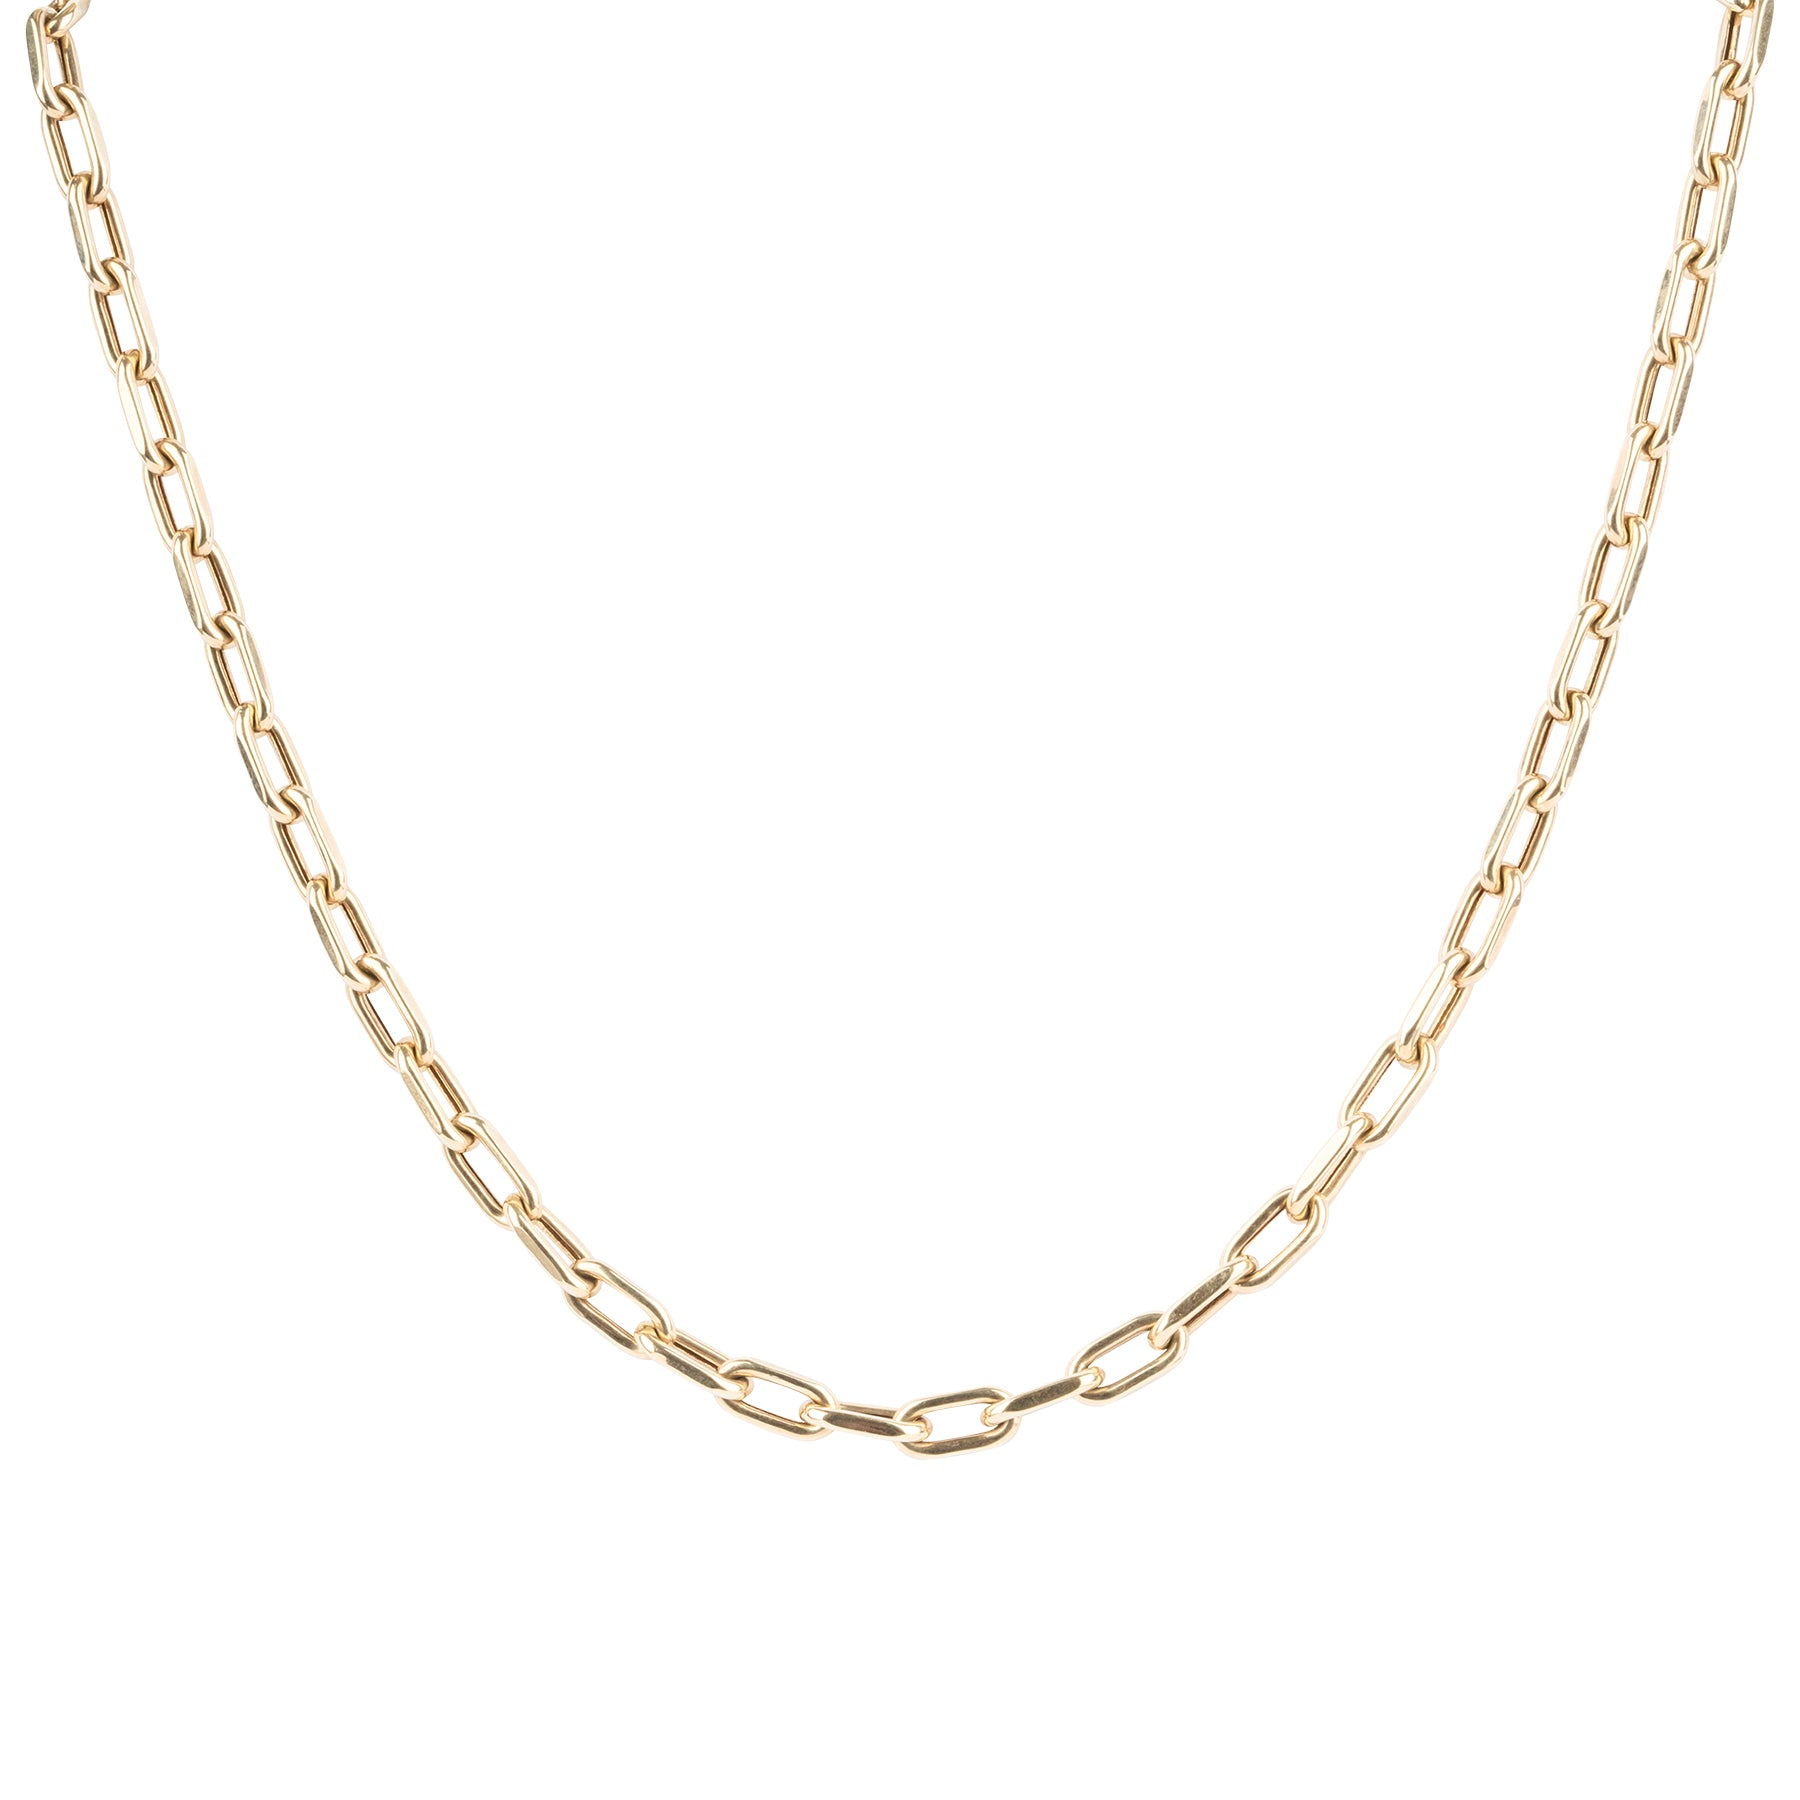 14K 18.9 Gram Oval Chain Link Necklace